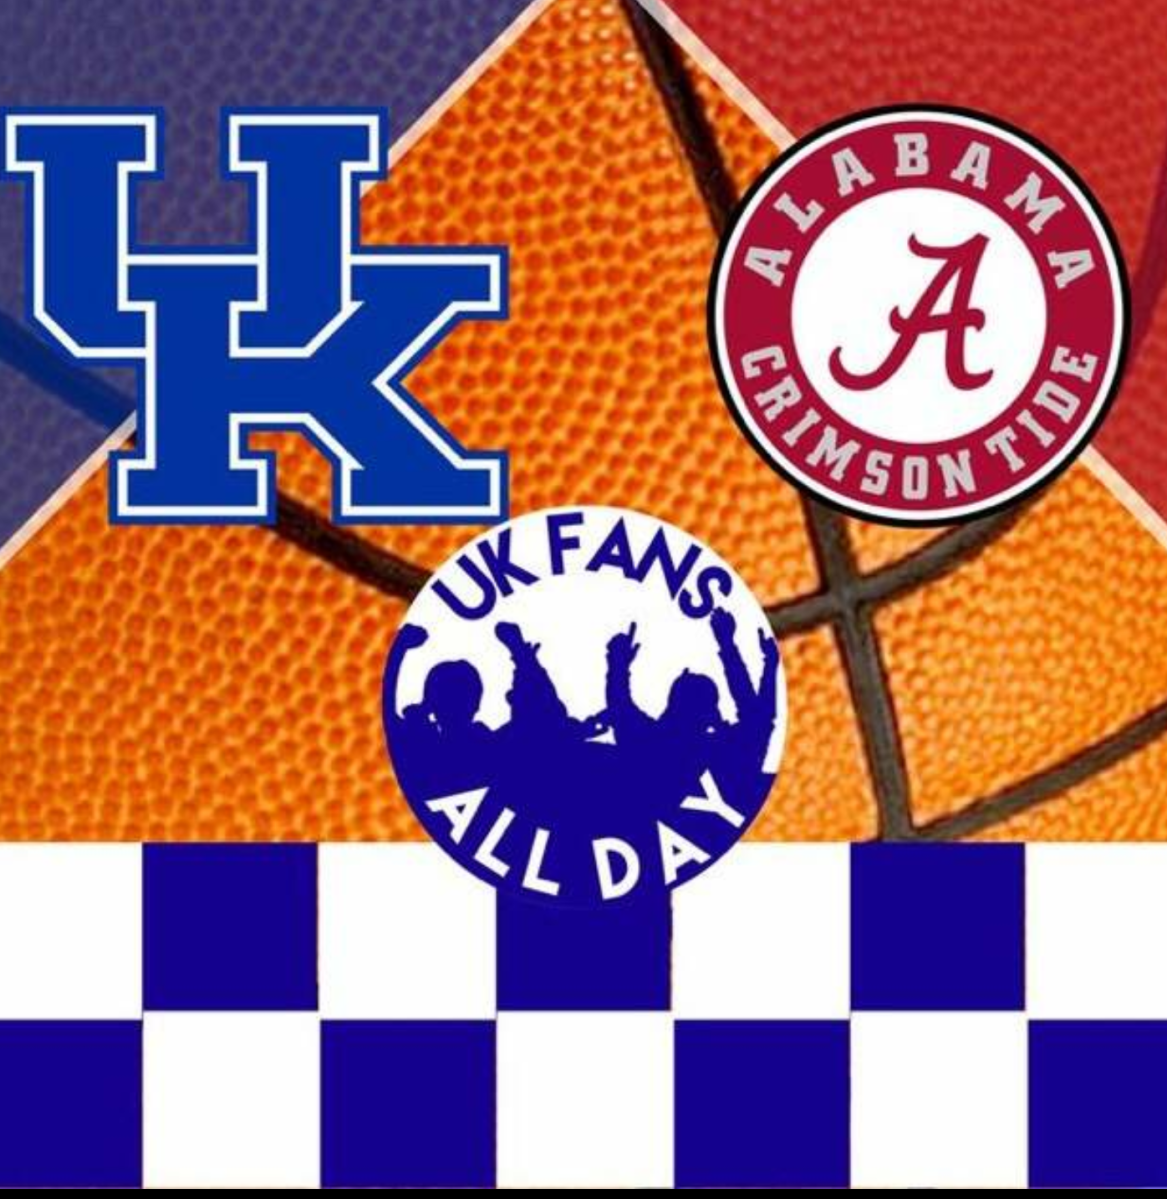 Kentucky 81 Alabama 71 PJ Washington leads UK with 16 points. What's next for the Cats?